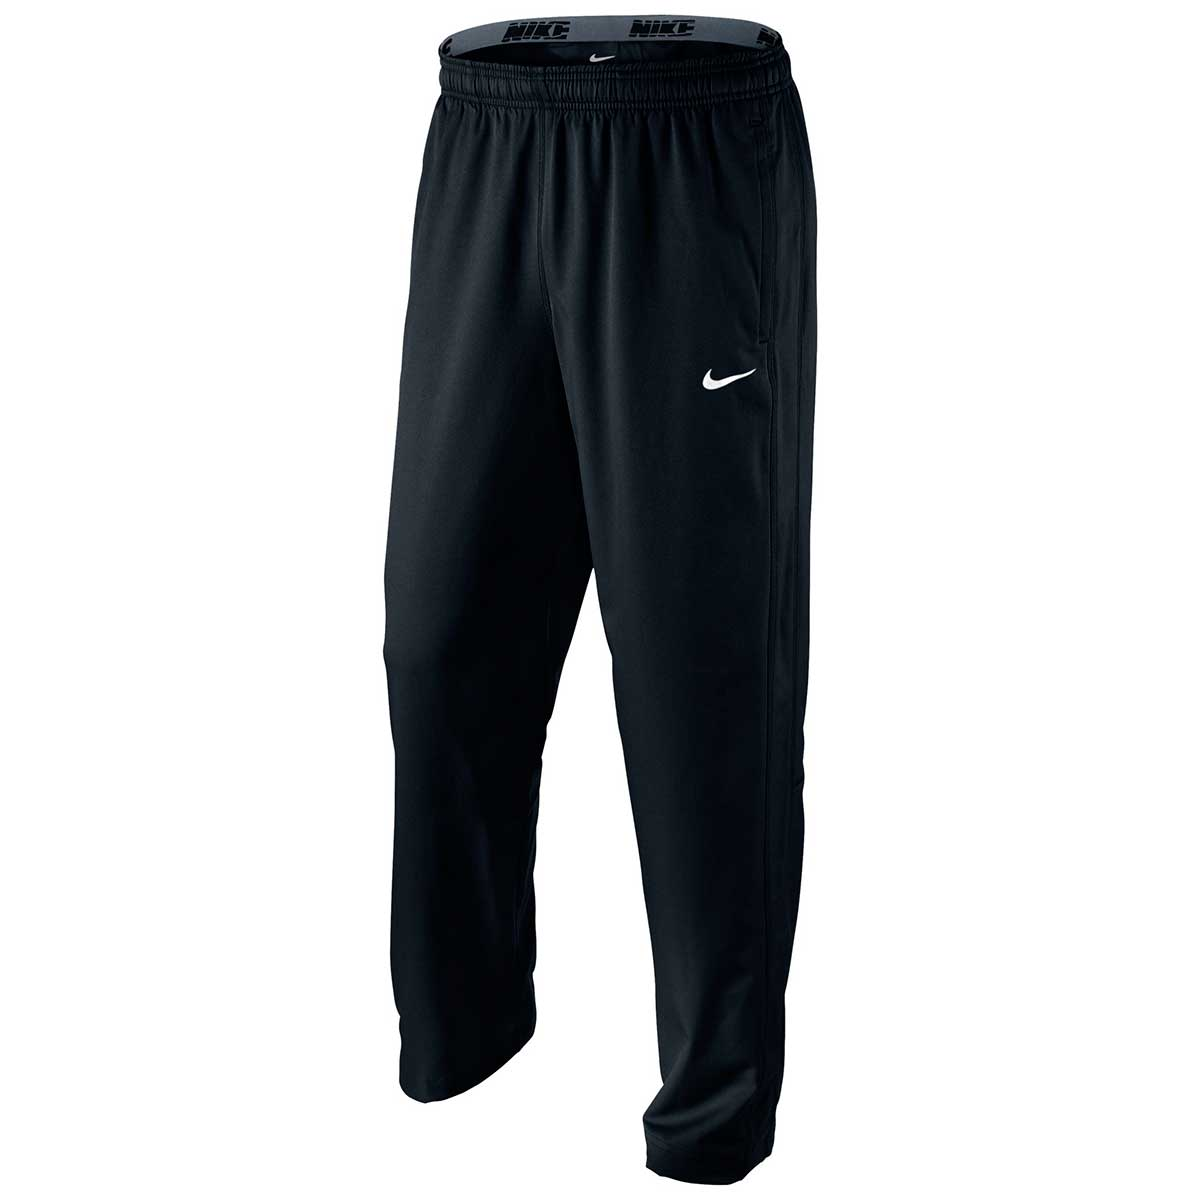 de832c018 Buy Nike Mens Dri-fit Track Pant Online India| Nike Trackpants & Clothing  Online Store